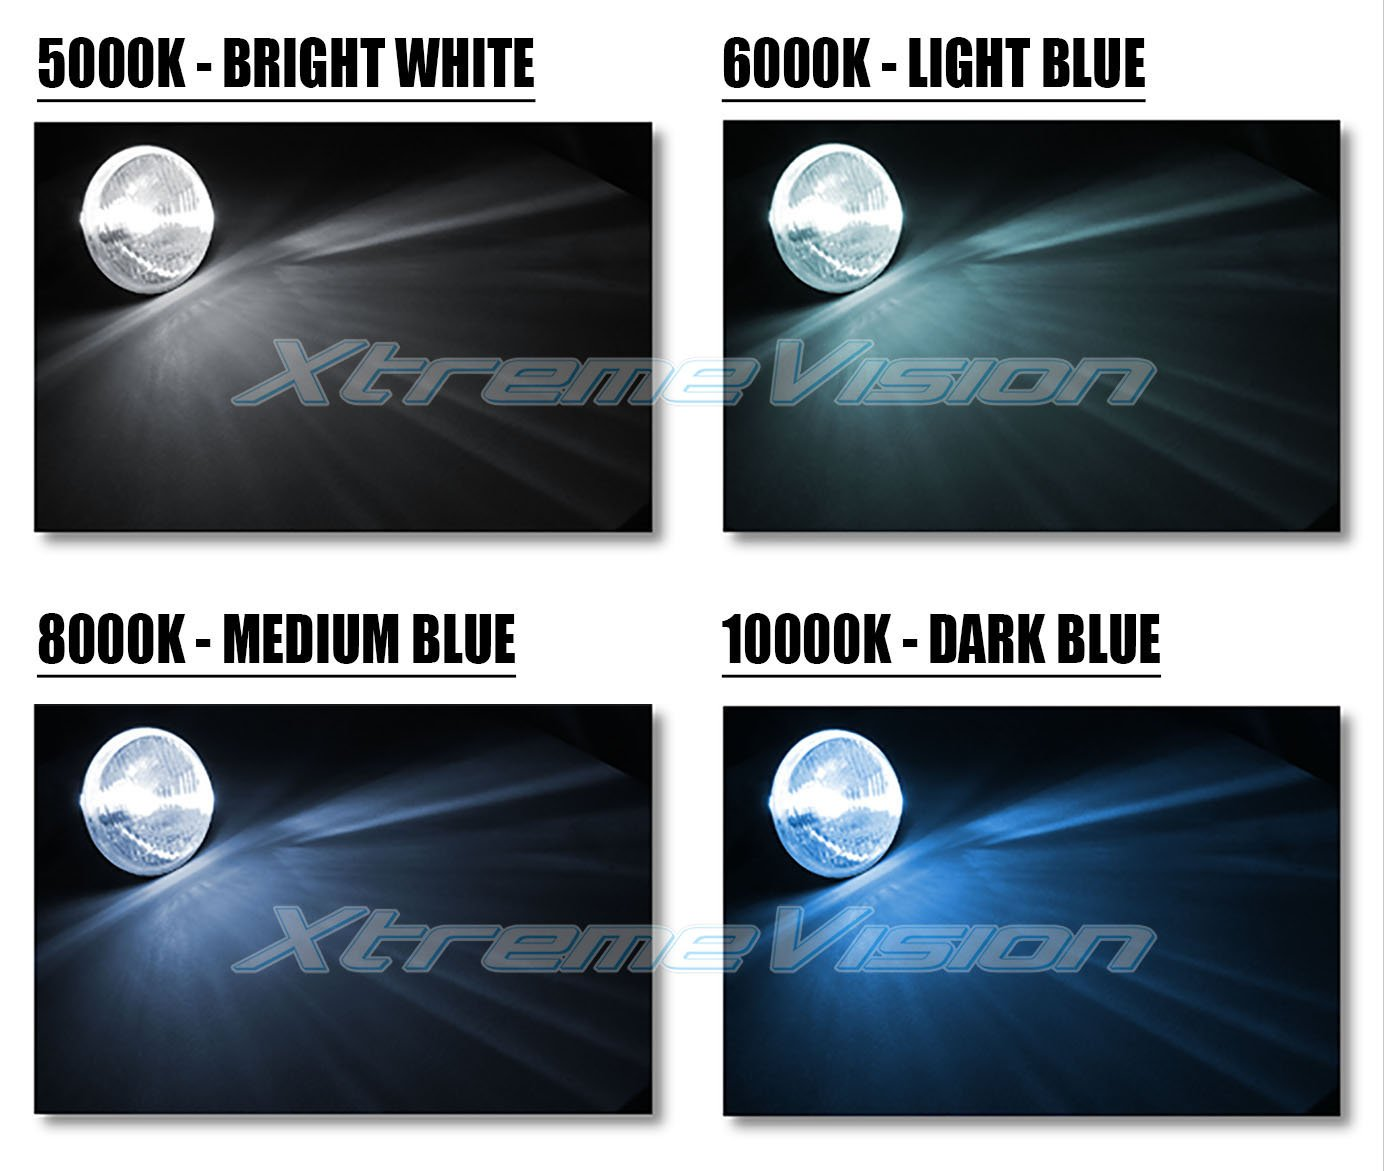 XtremeVision HID Xenon Replacement Bulbs - Bi-Xenon H13 4300K - Bright White (1 Pair) - 2 Year Warranty by XtremeVision (Image #5)